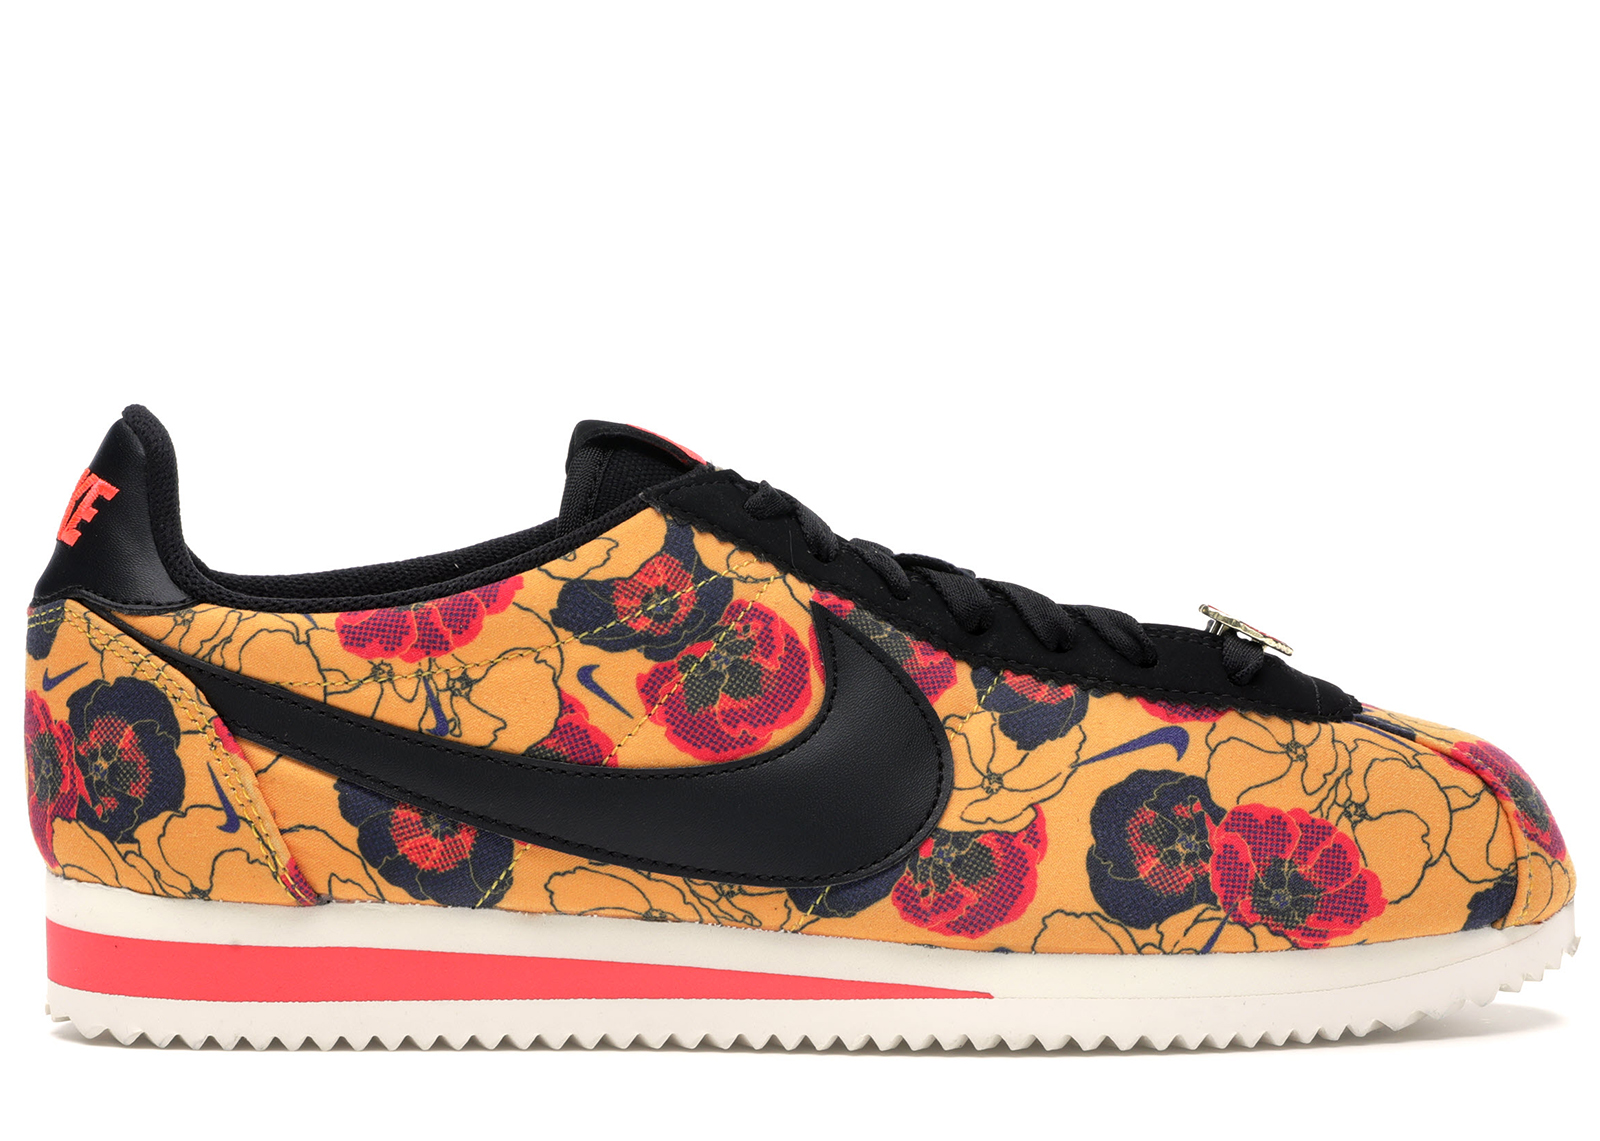 Nike Classic Cortez LX Floral Pack Gold